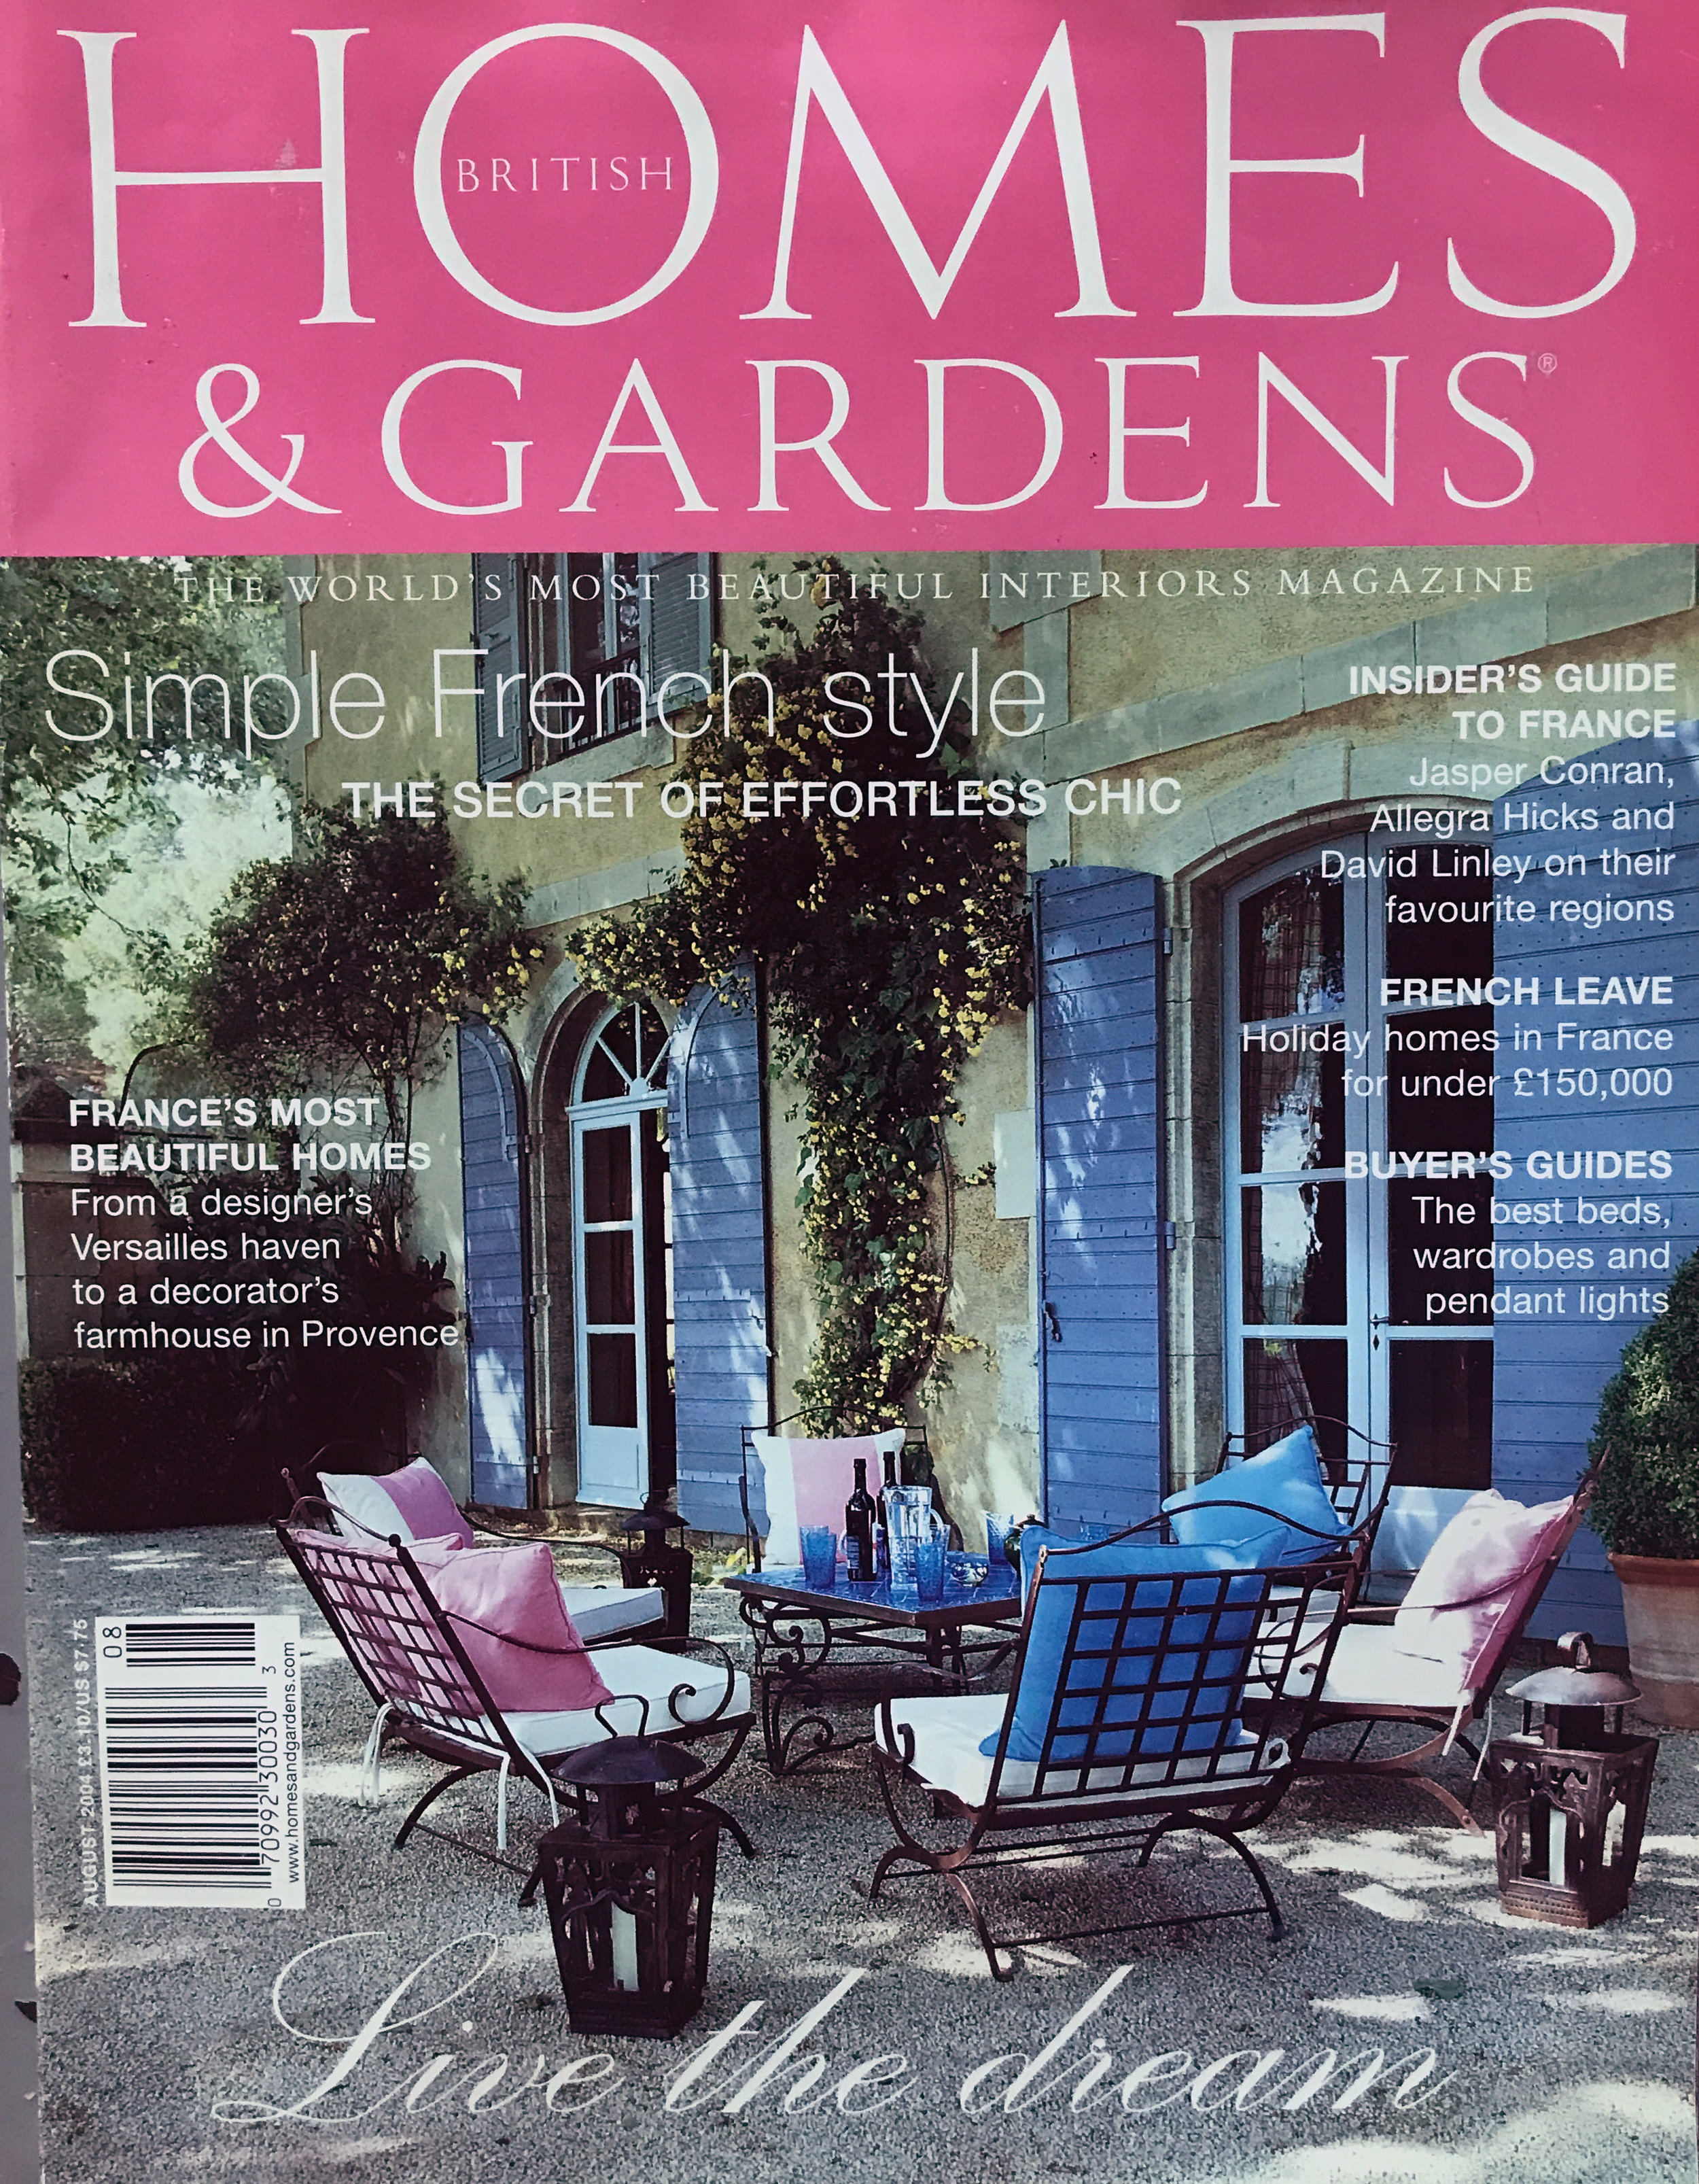 Ginny-Magher-British-Homes-Gardens-Cover.jpg